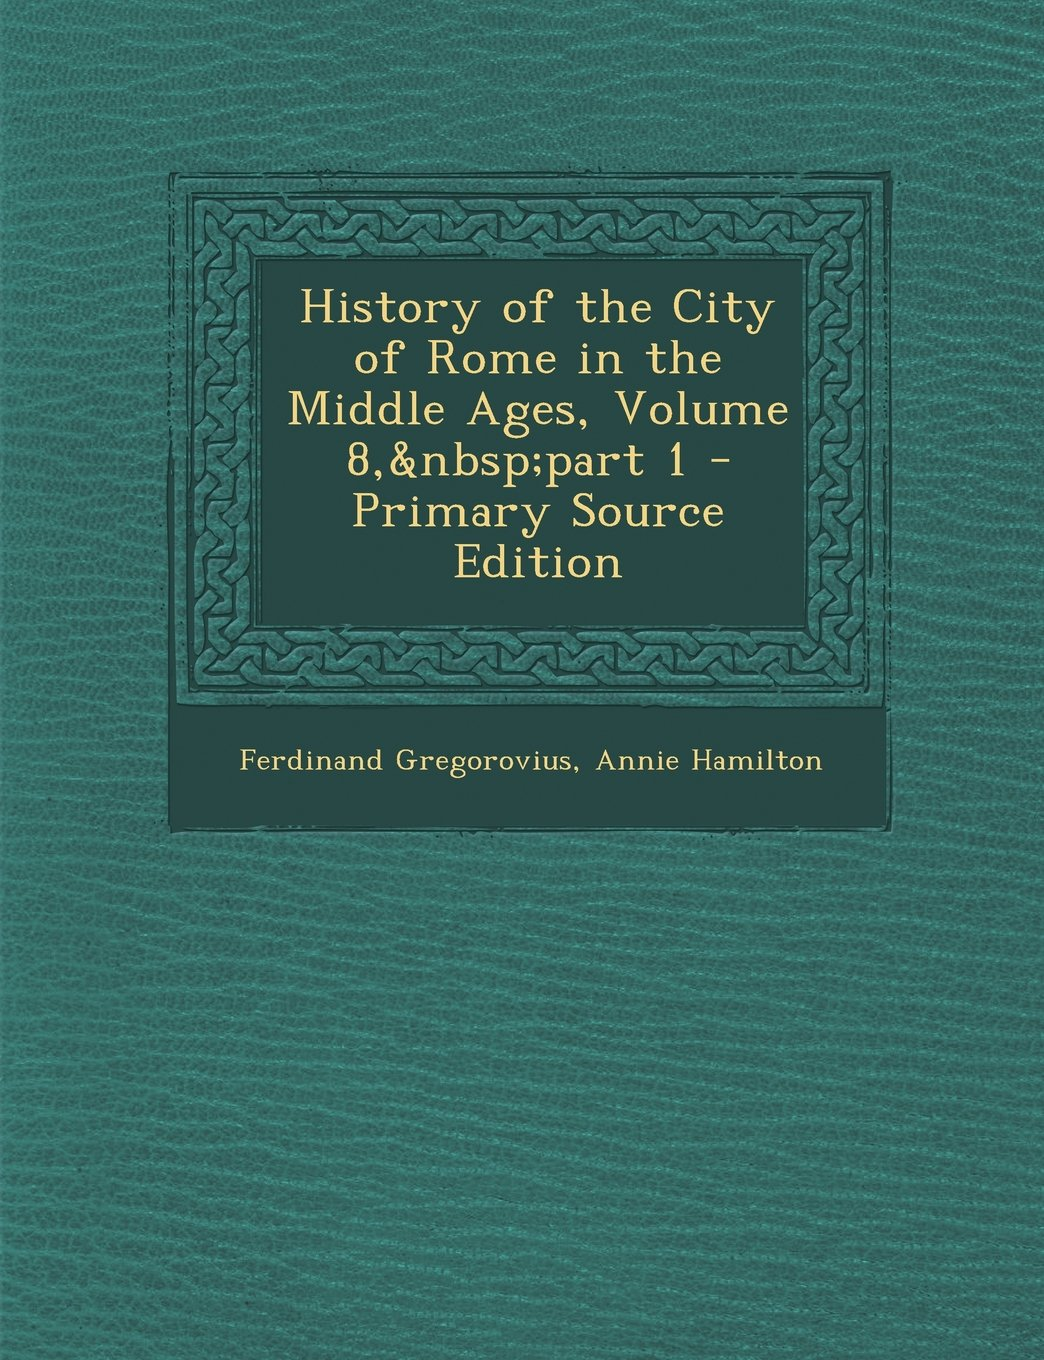 History of the City of Rome in the Middle Ages, Volume 8, Part 1 ebook